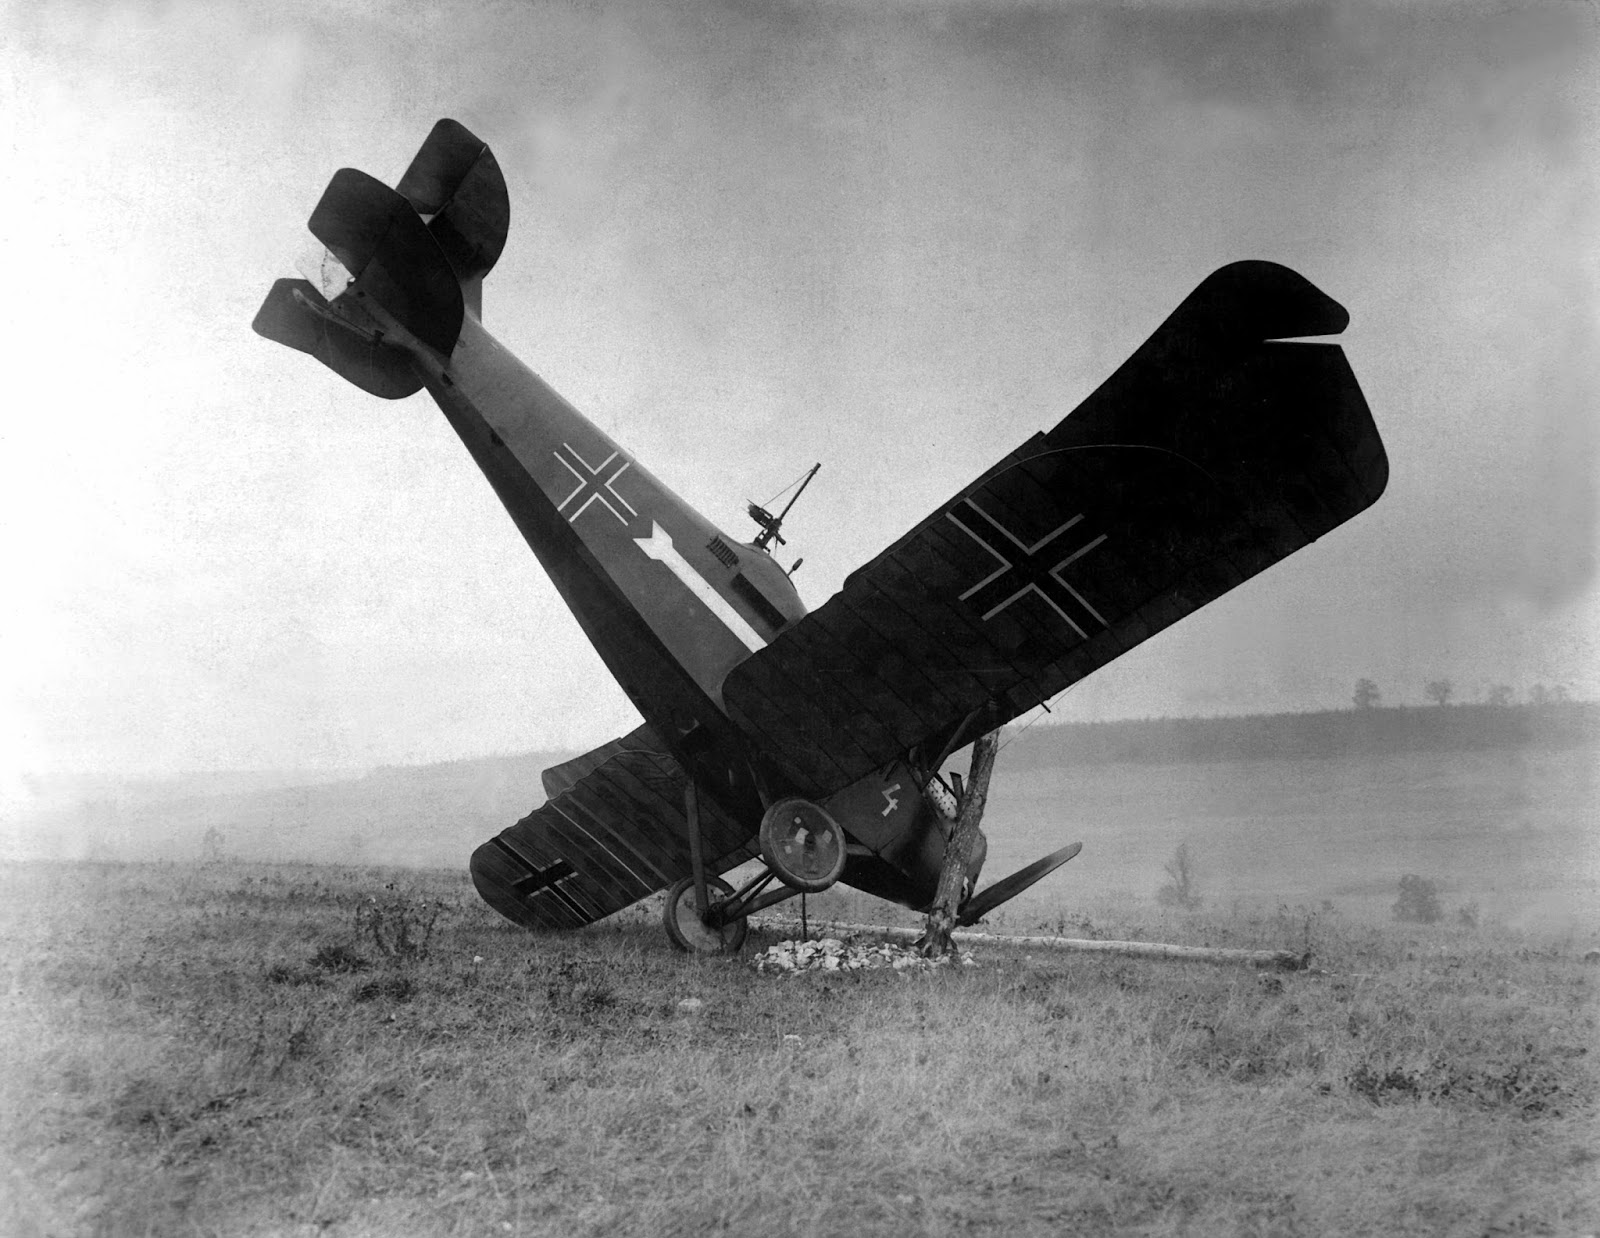 Historical photos ww1 planes in battle